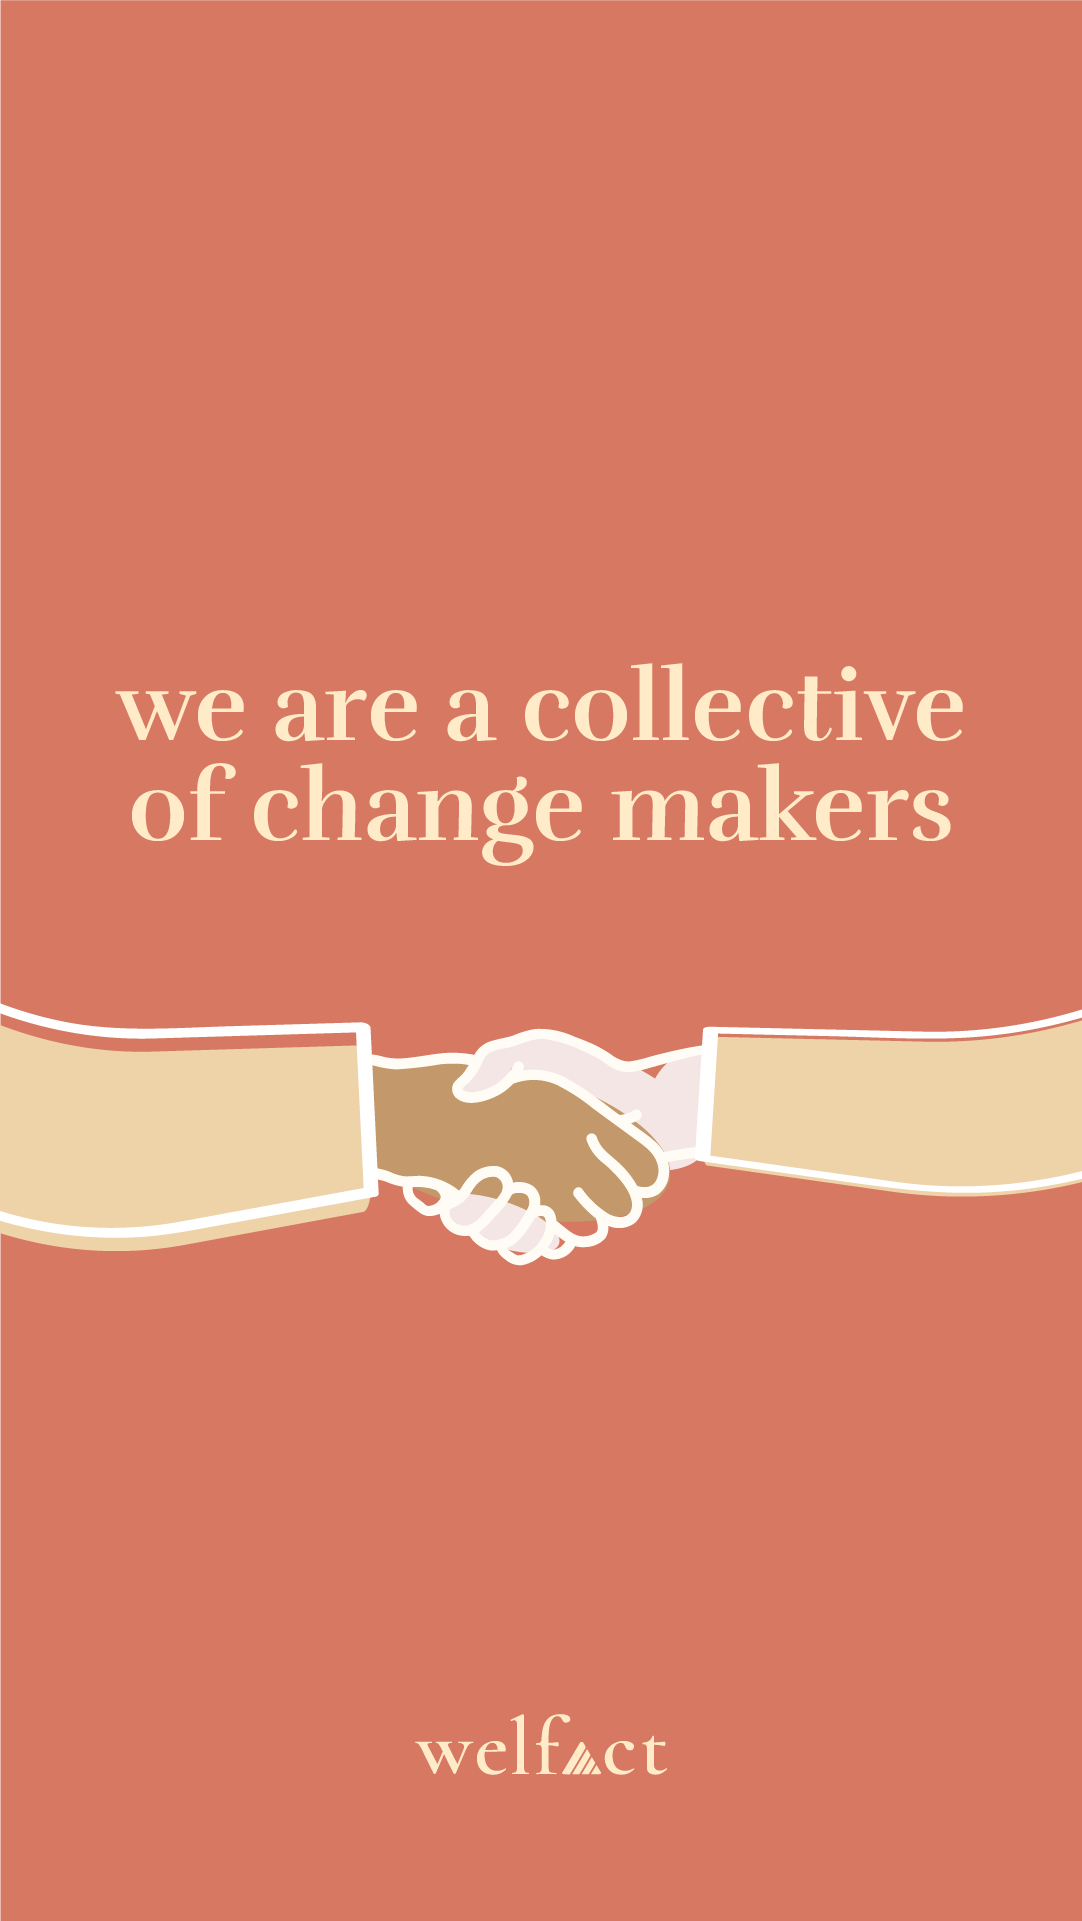 Welfact Assets - Change Makers, Red